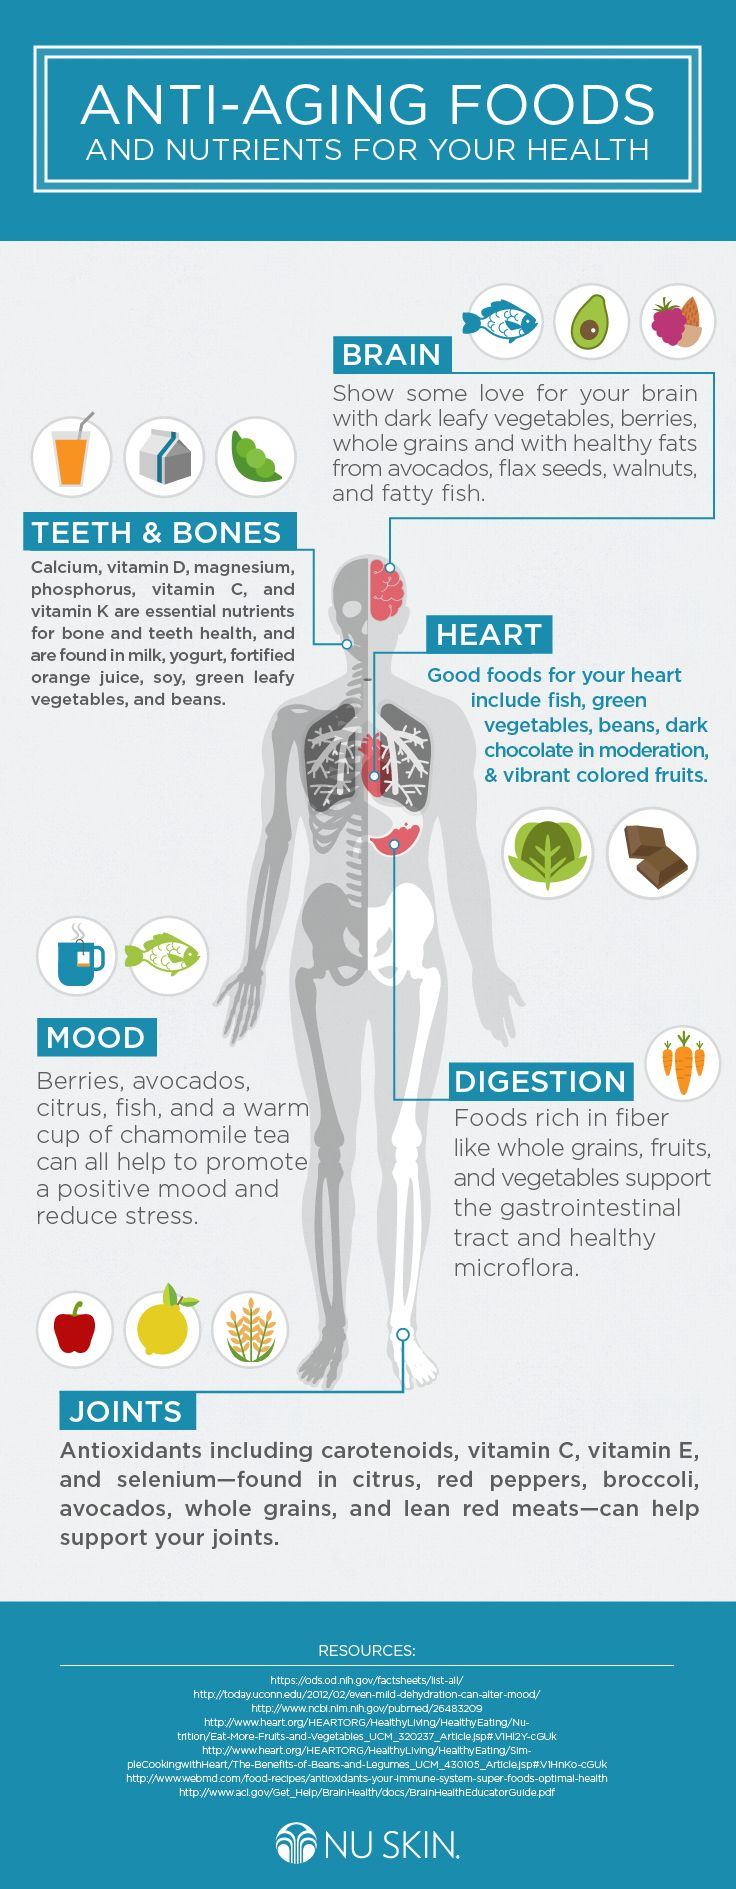 We've put together some suggestions of anti-aging foods and nutrients for your body and how they can help you look and feel your best at any age. Take a look, and start your journey to healthy aging today!